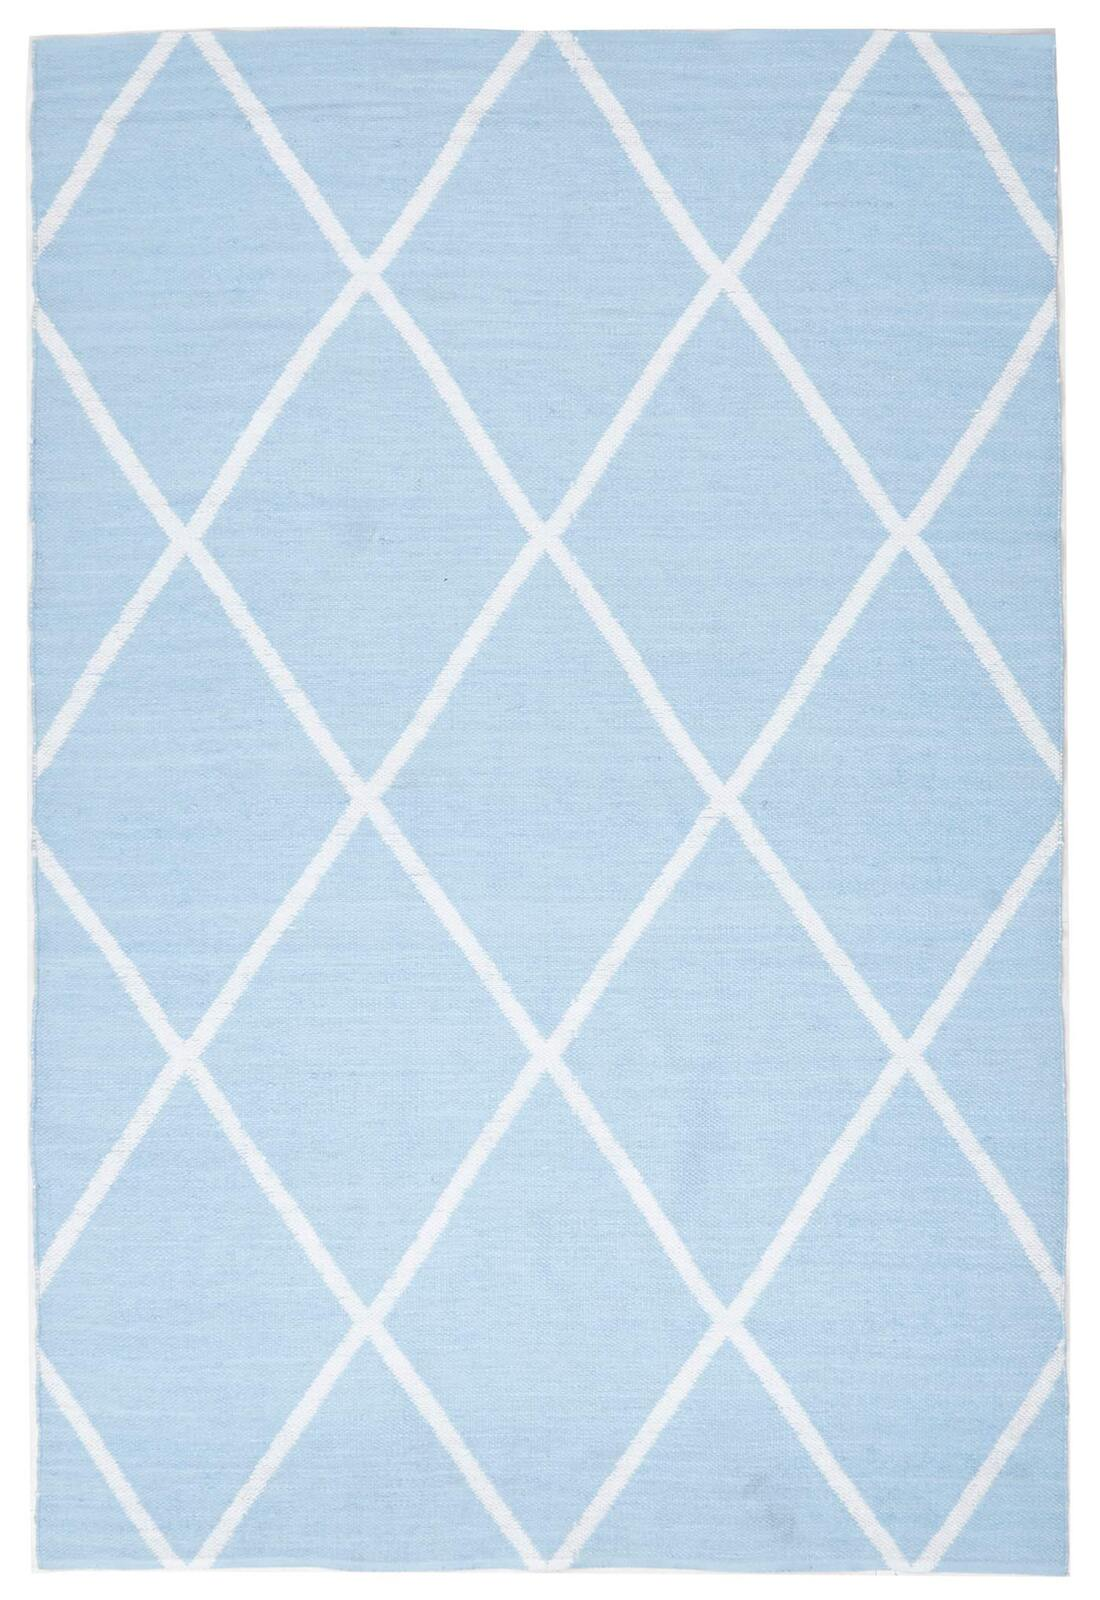 Coastal Indoor Out door Flooring Rug Area Carpet Diamond Sky Blue White 220x150cm